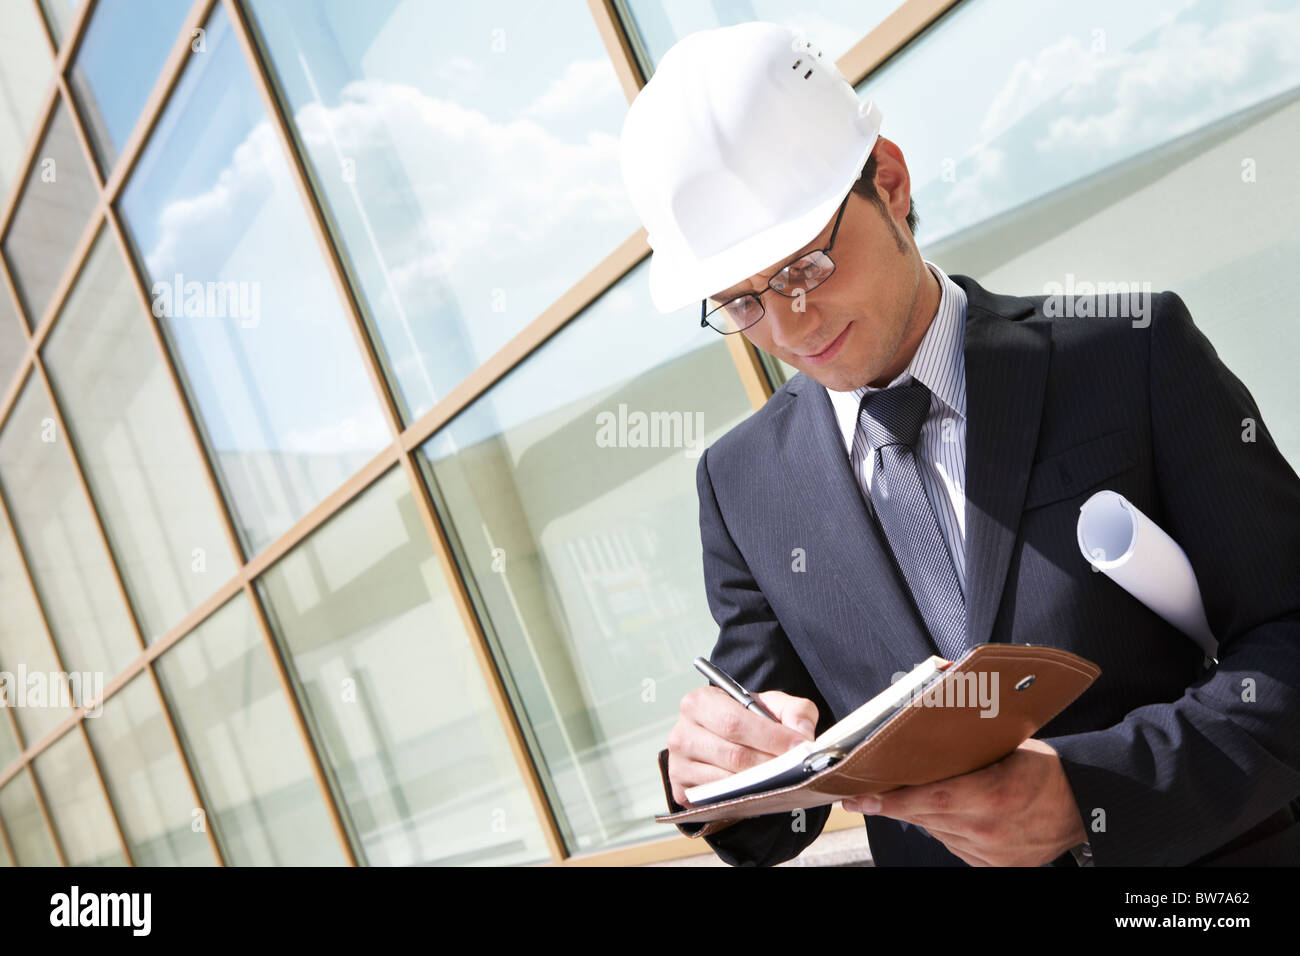 Portrait of confident foreman in helmet writing business plan - Stock Image